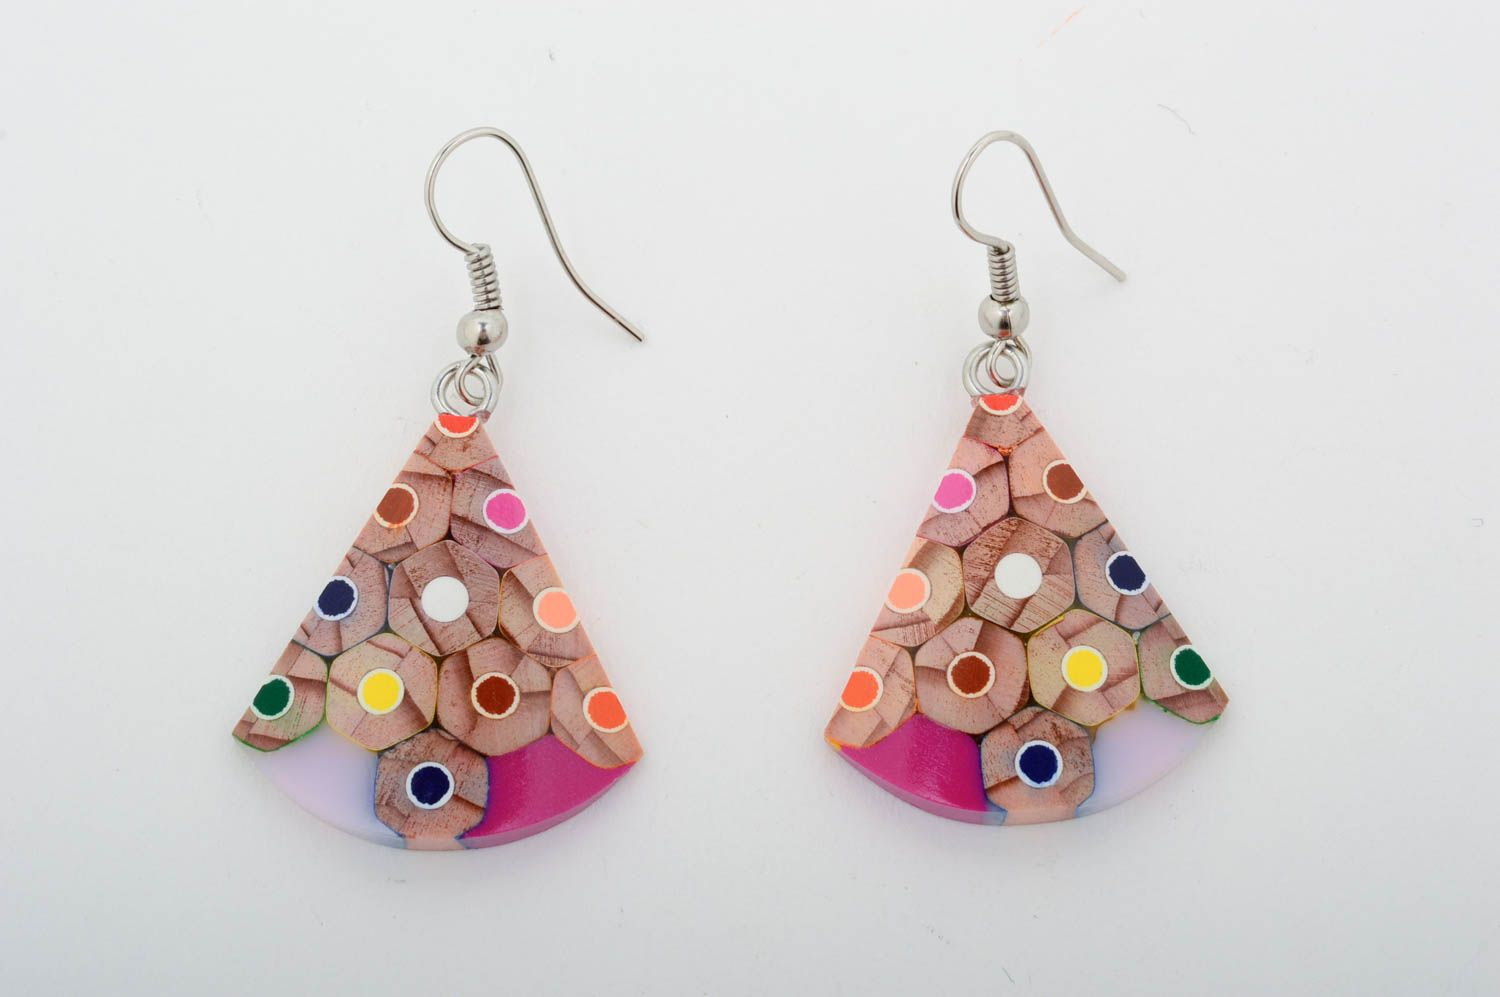 Wooden designer earrings handmade earrings with charms stylish accessories  photo 3